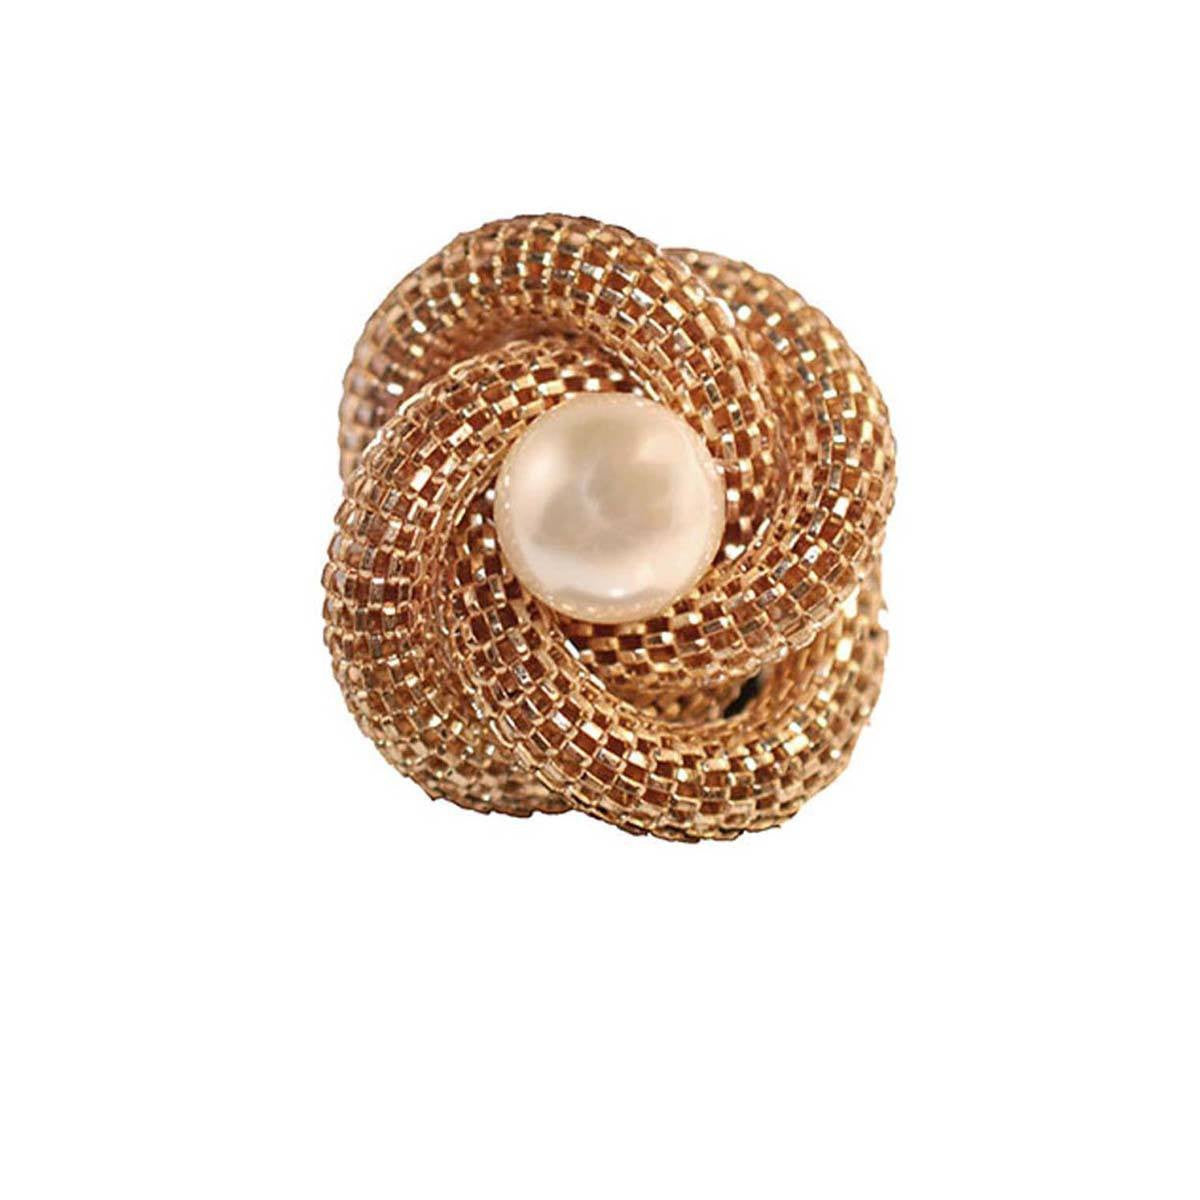 Gold Mesh Knot Ring, Faux Pearl Center, Adjustable